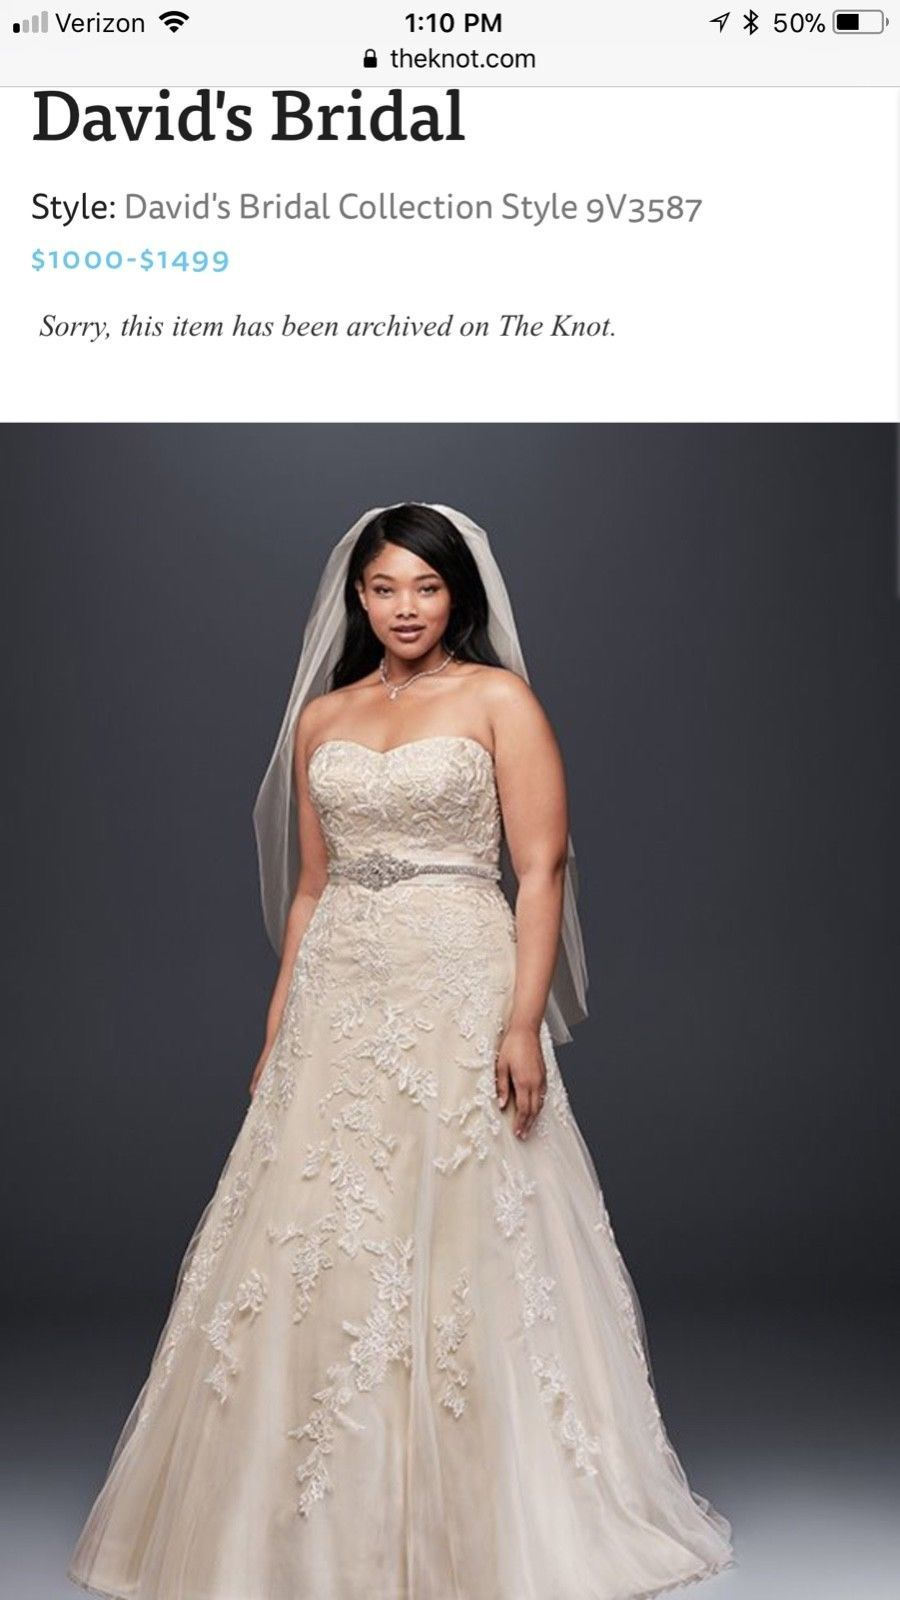 Gently Used Plus Size Wedding Dress For Sale Originally Purchased